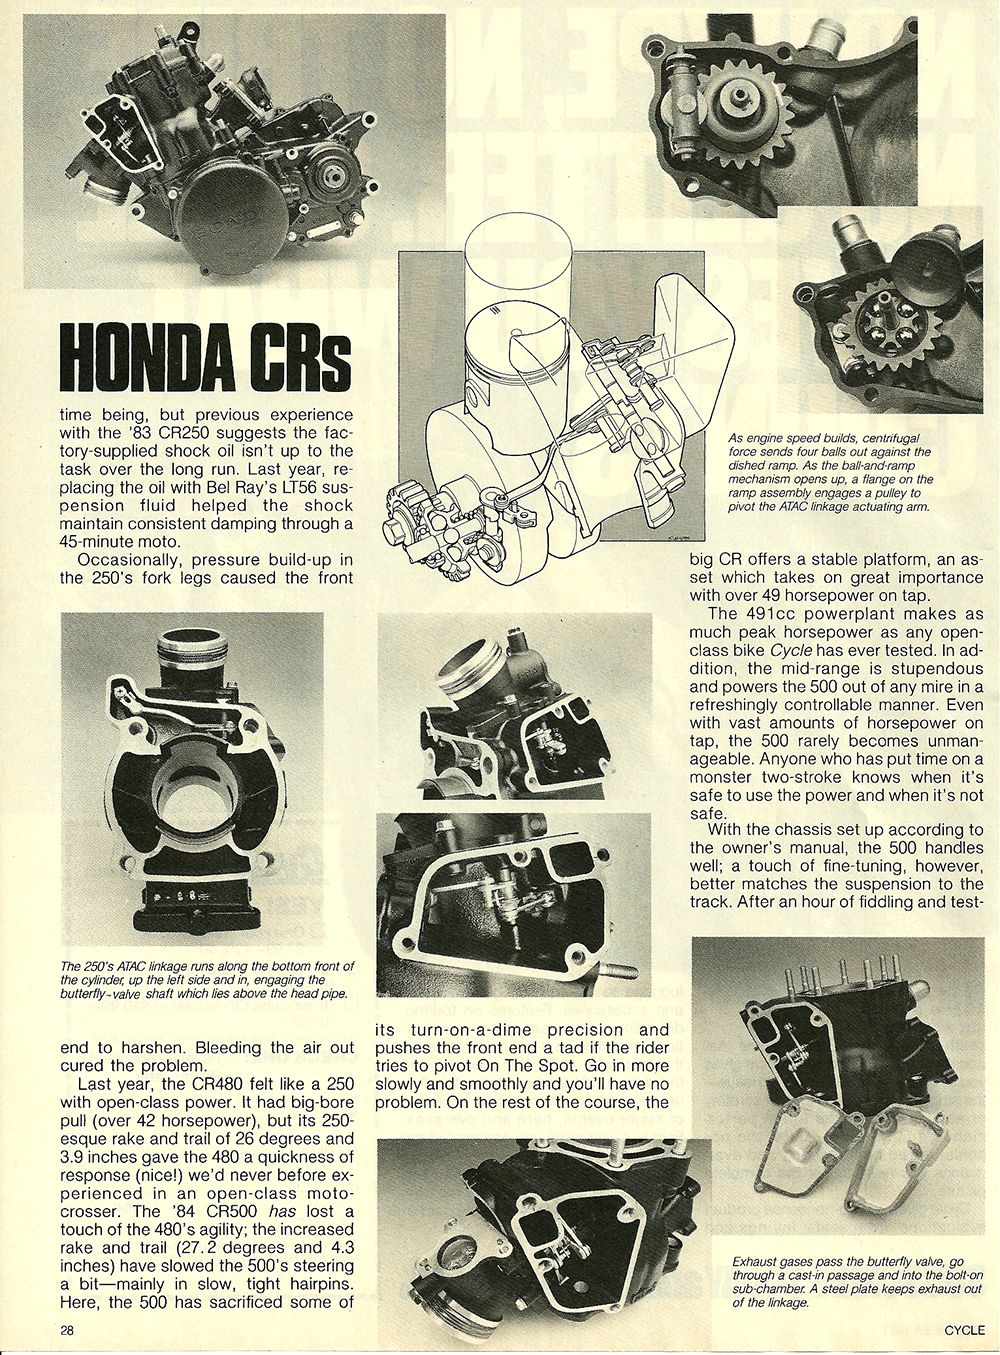 1984 Honda CR 125 250 500 road test 10.jpg